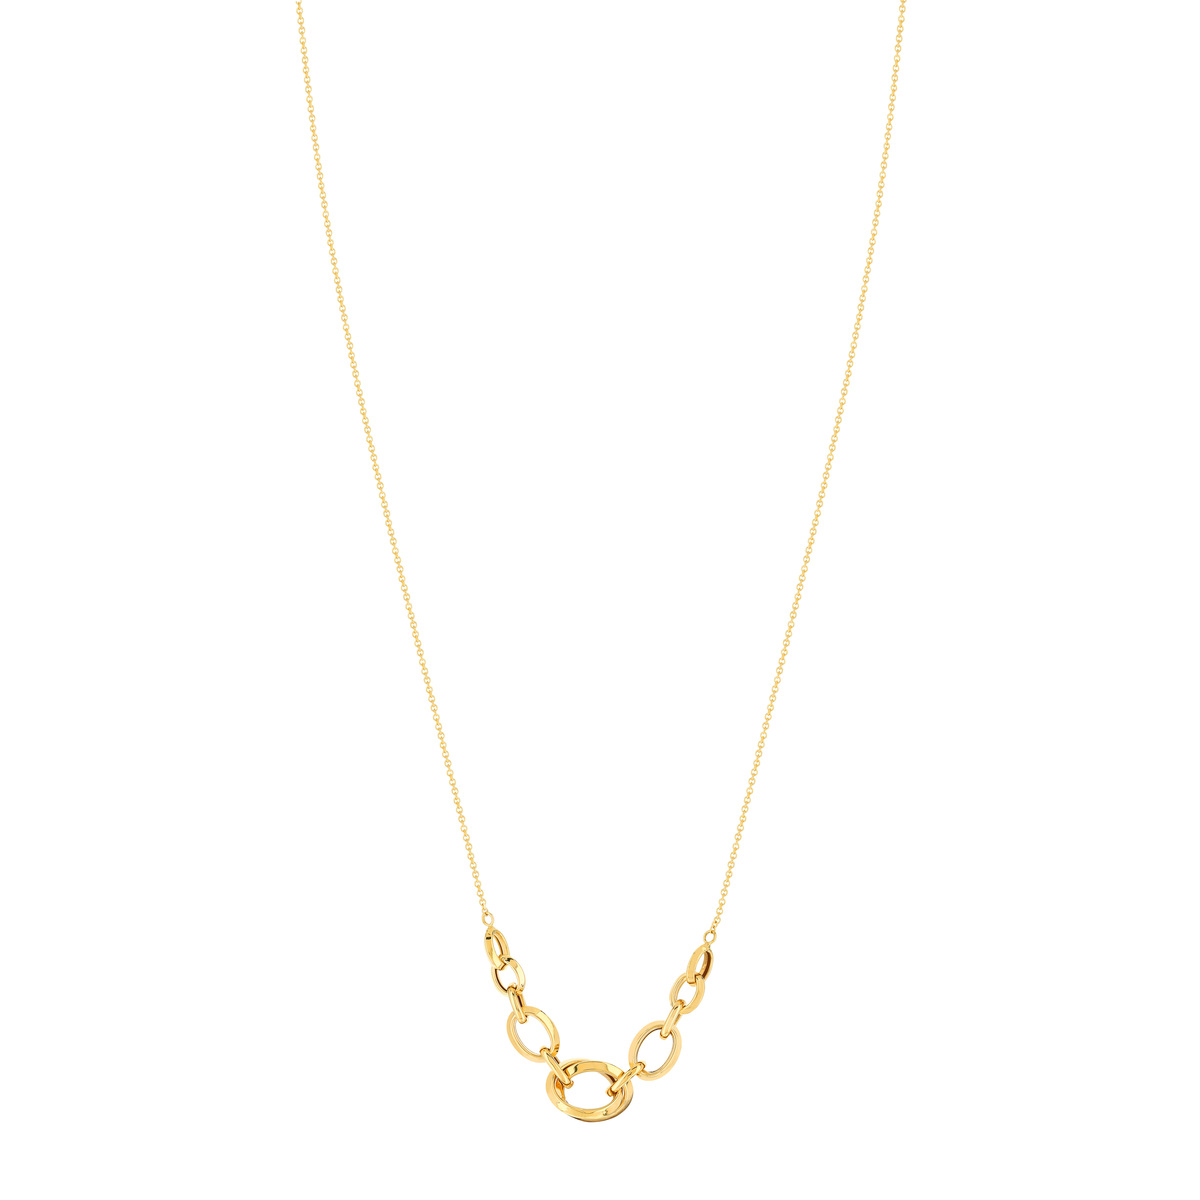 Collier or 750 42 cm - vue 1